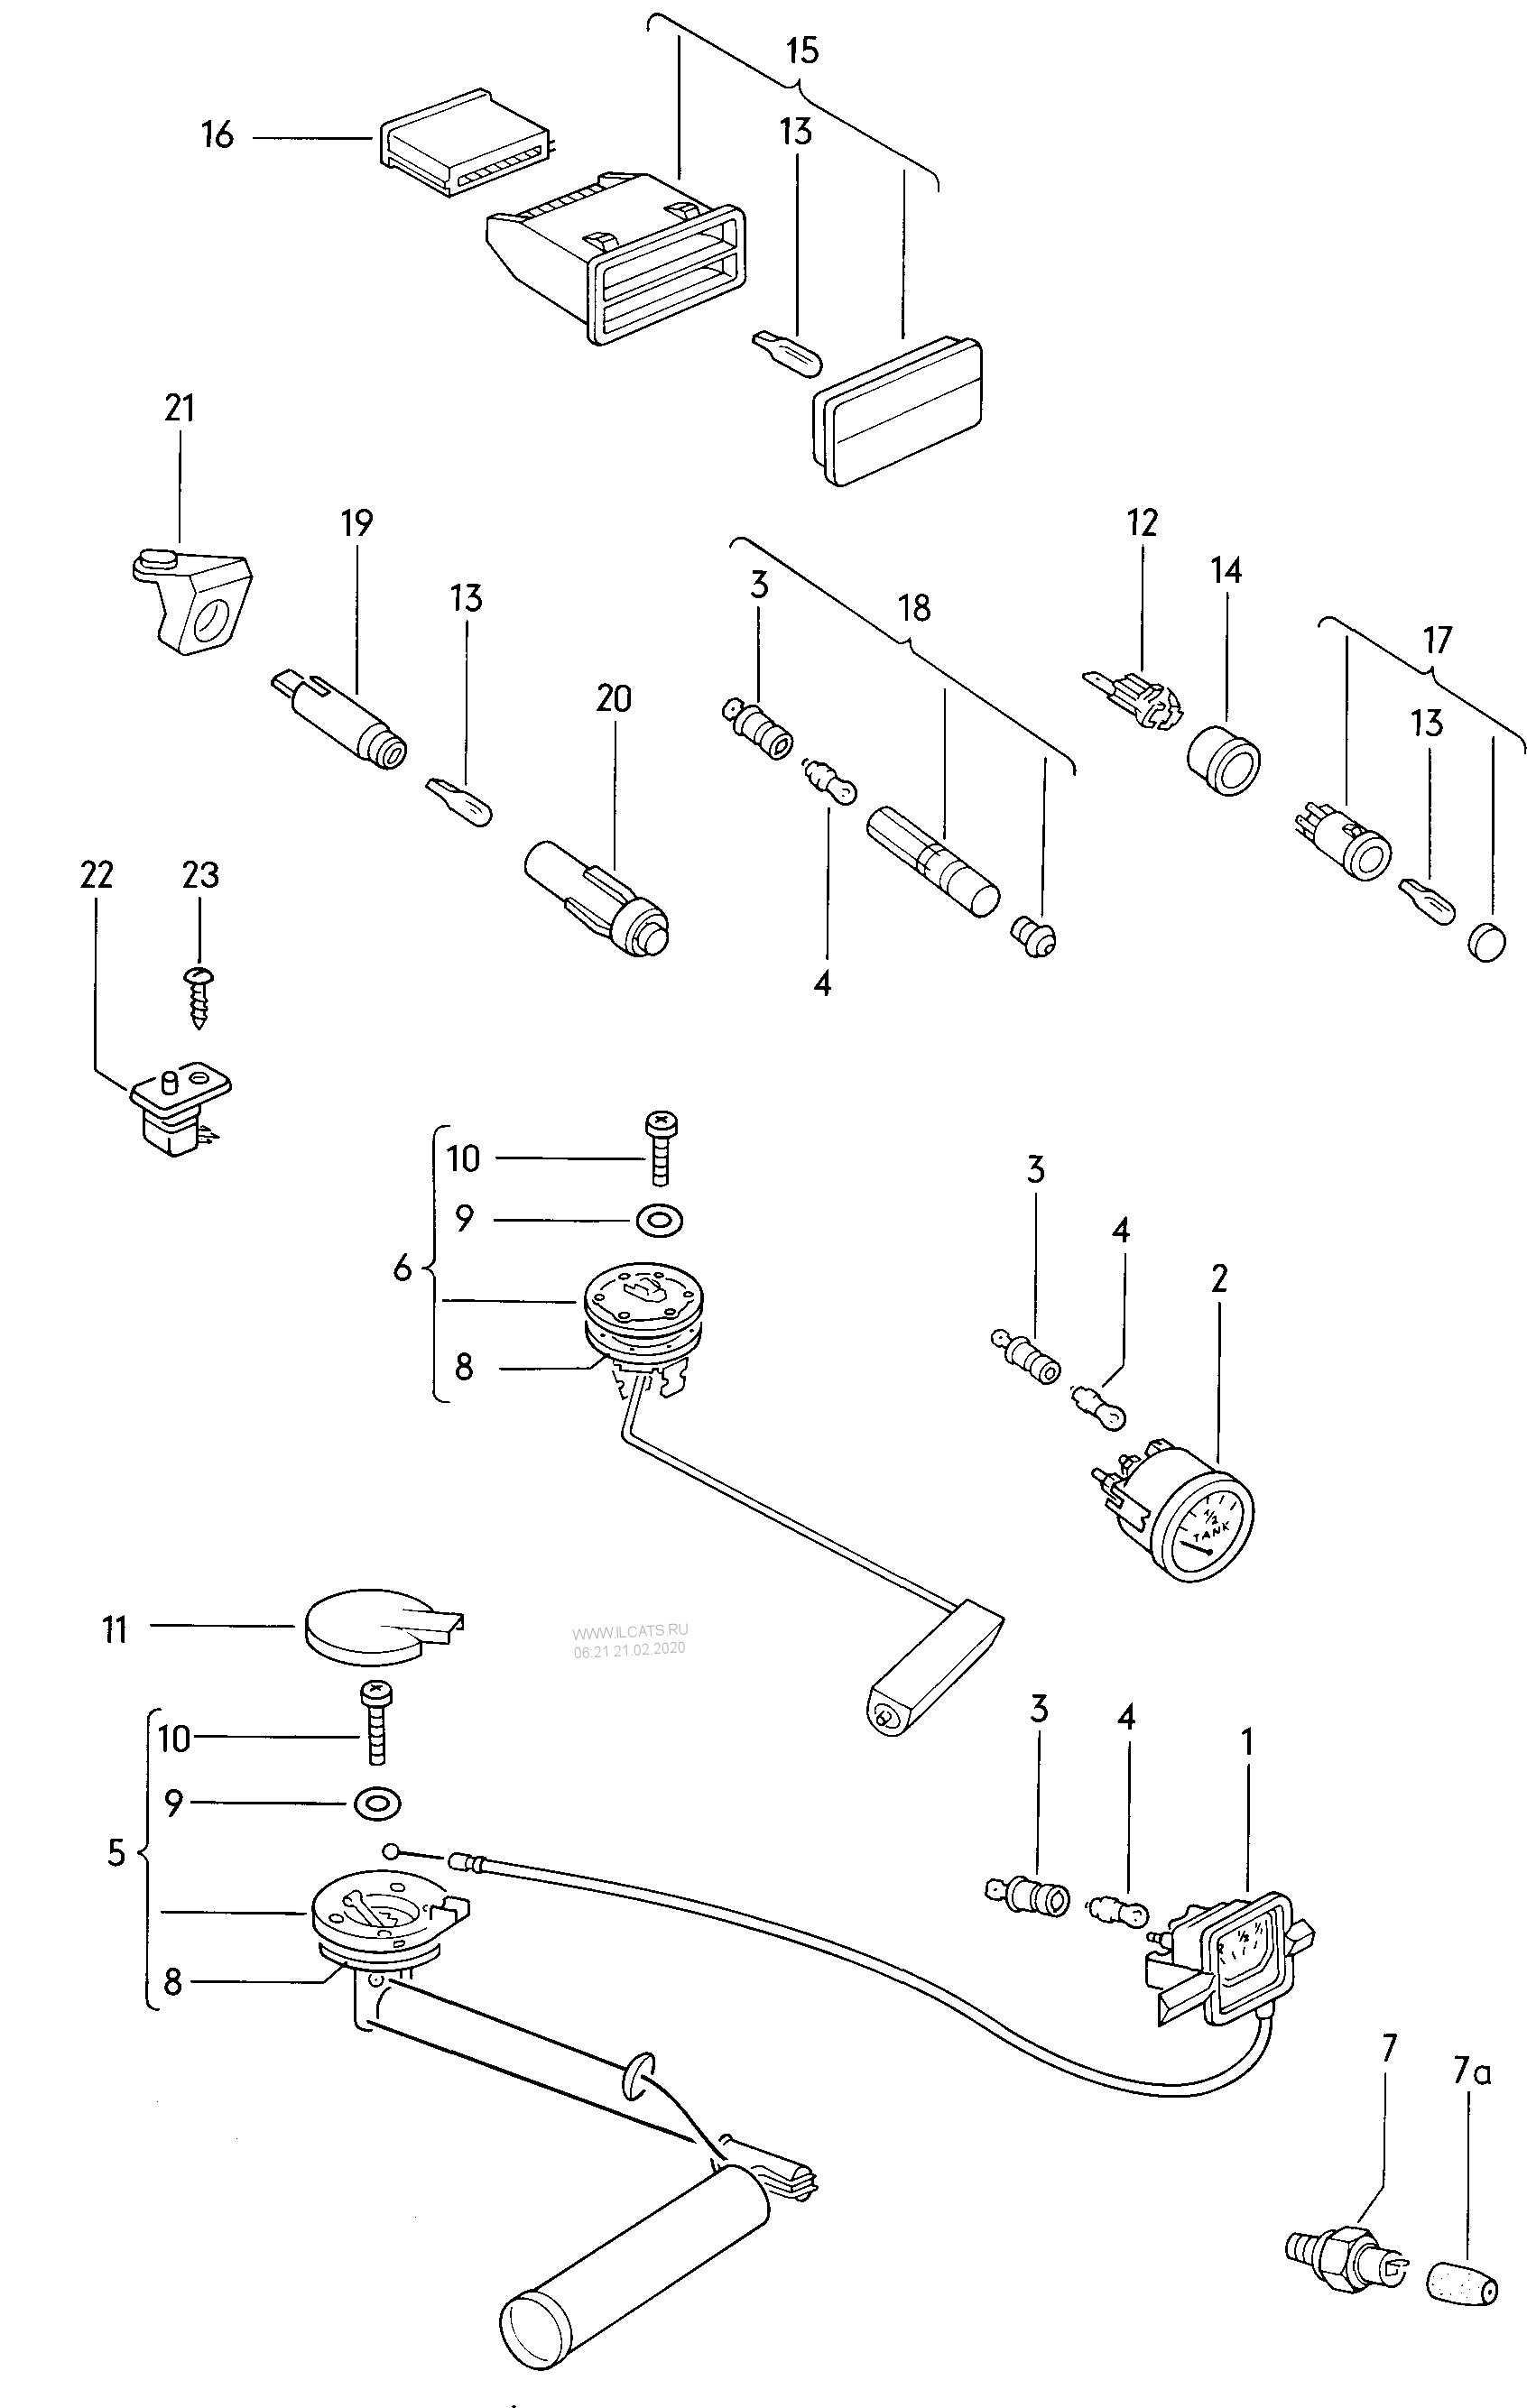 Vdo Oil Pressure Gauge Wiring Schematic Ob 2945] Oil Pressure Sender Switch Schematic Wiring Diagram Of Vdo Oil Pressure Gauge Wiring Schematic